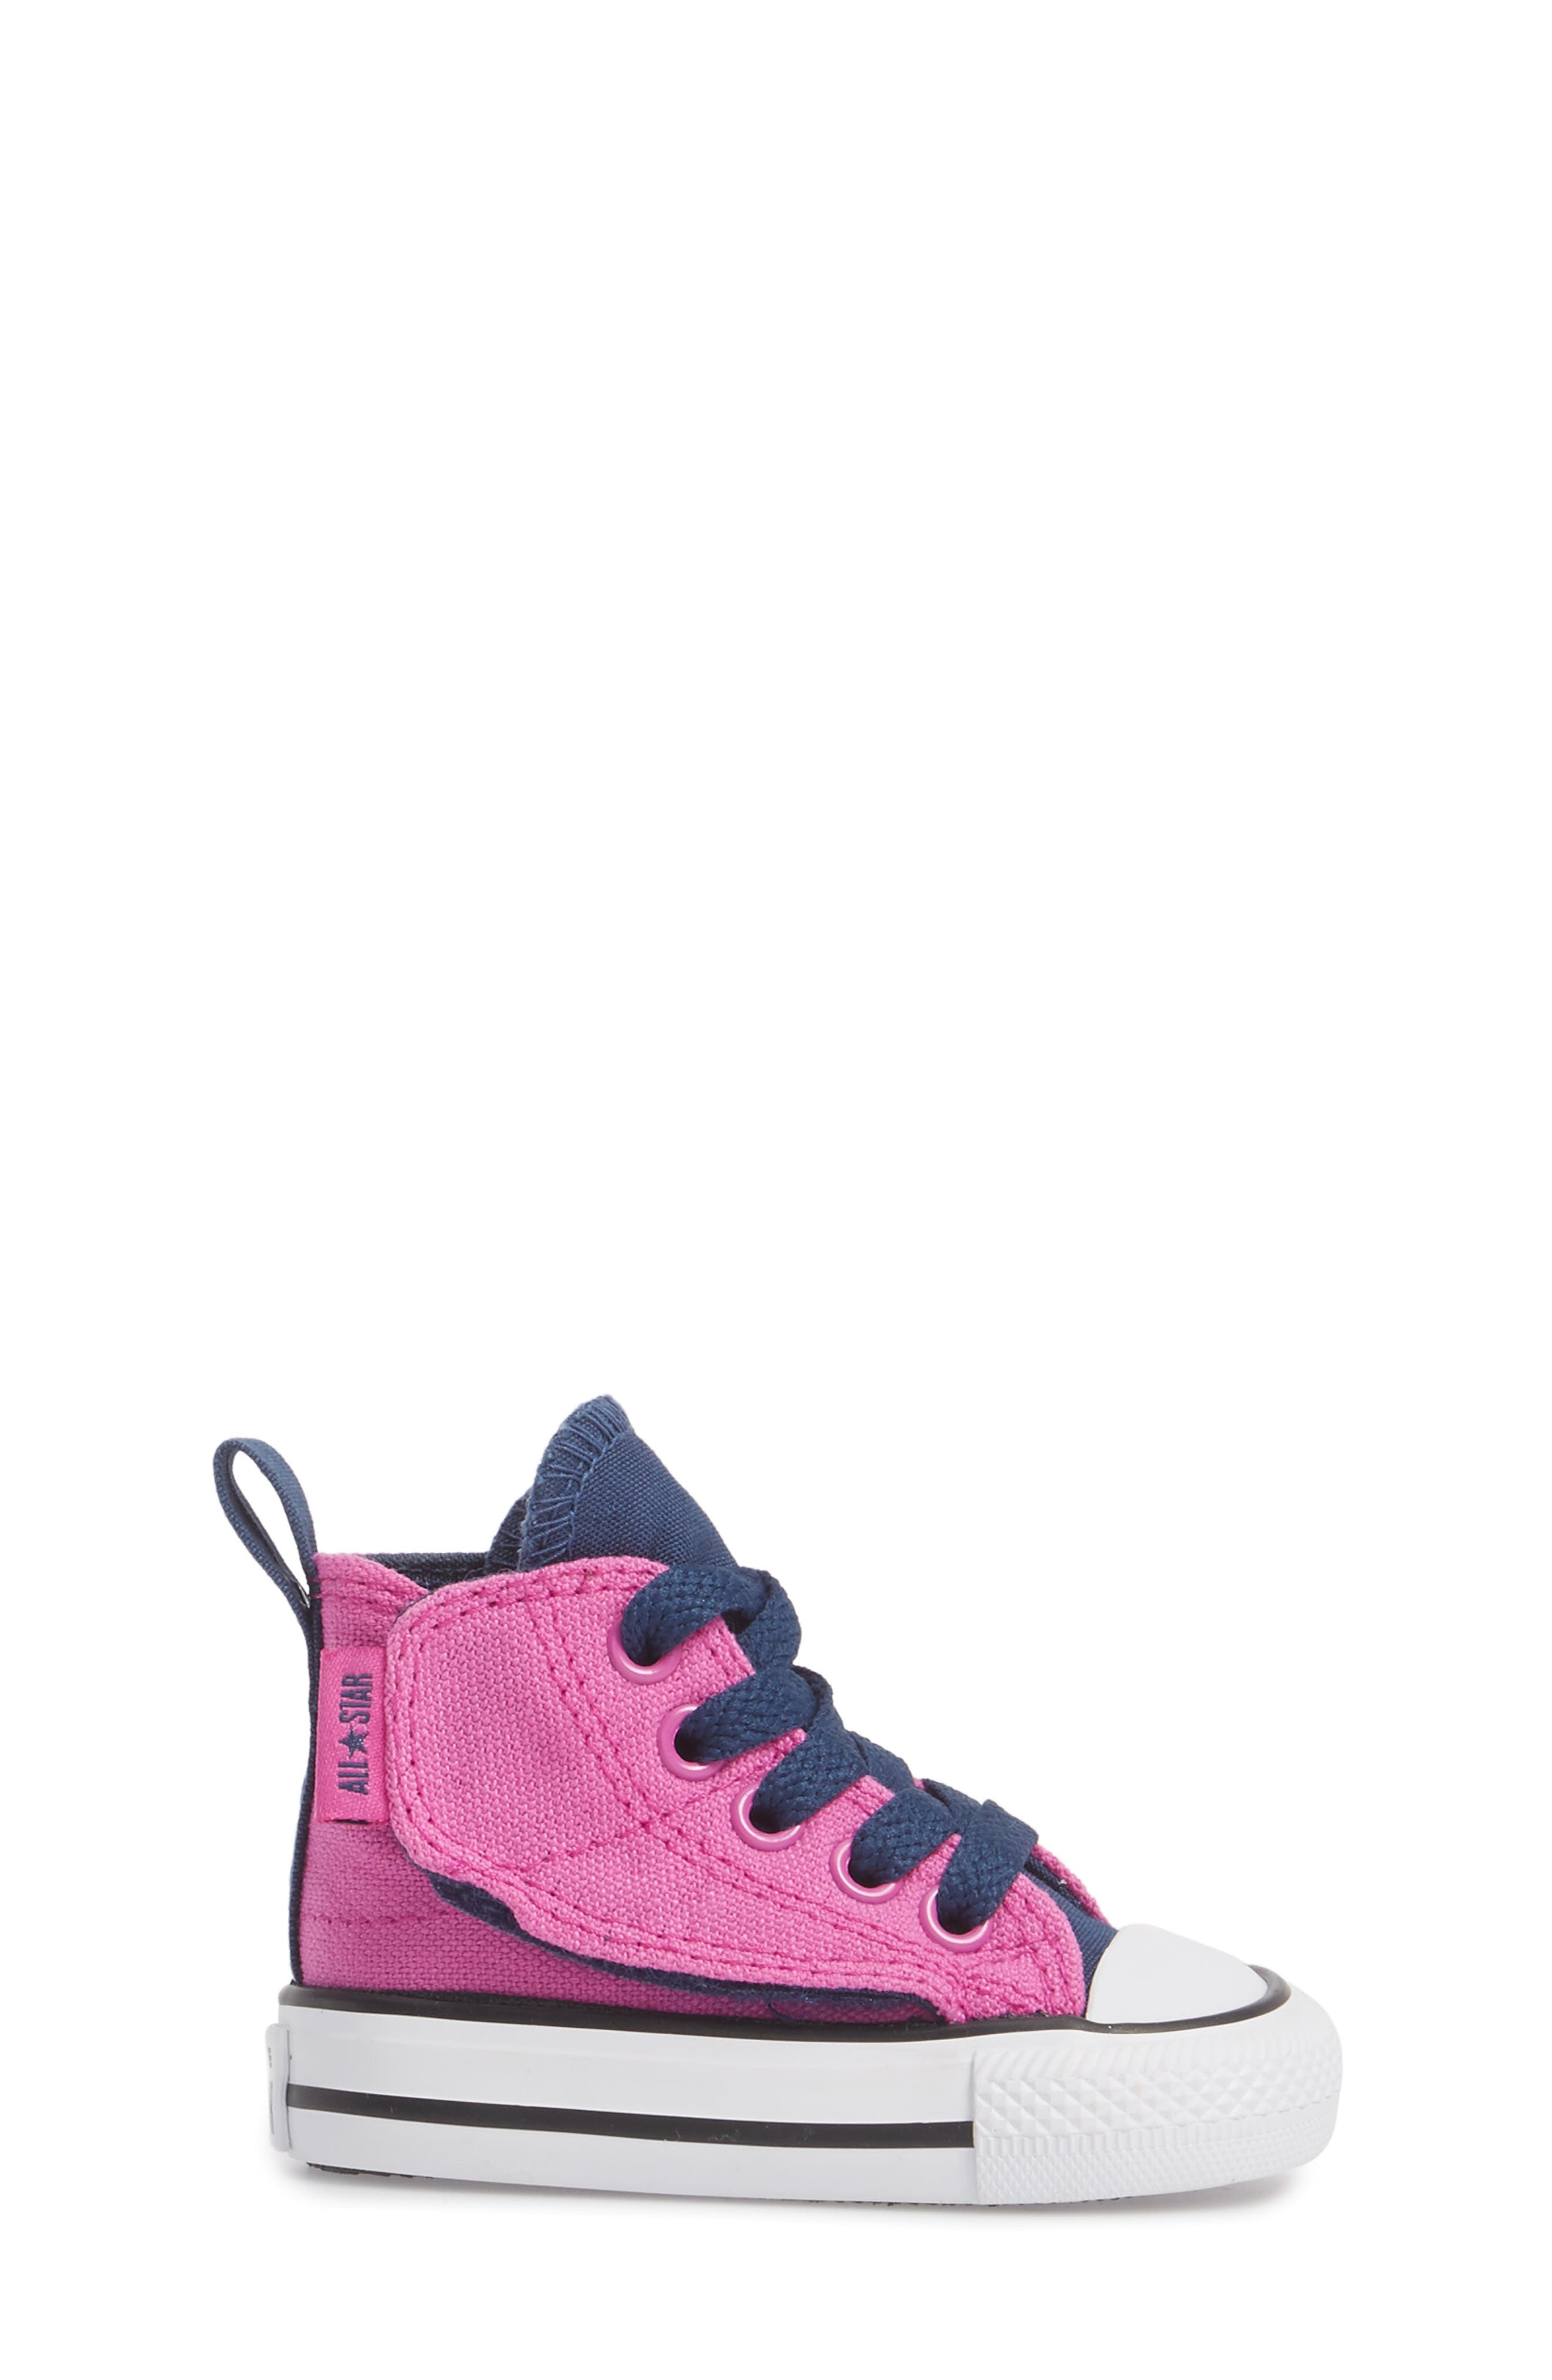 Alternate Image 3  - Converse Chuck Taylor® All Star® 'Simple Step' High Top Sneaker (Baby, Walker & Toddler)